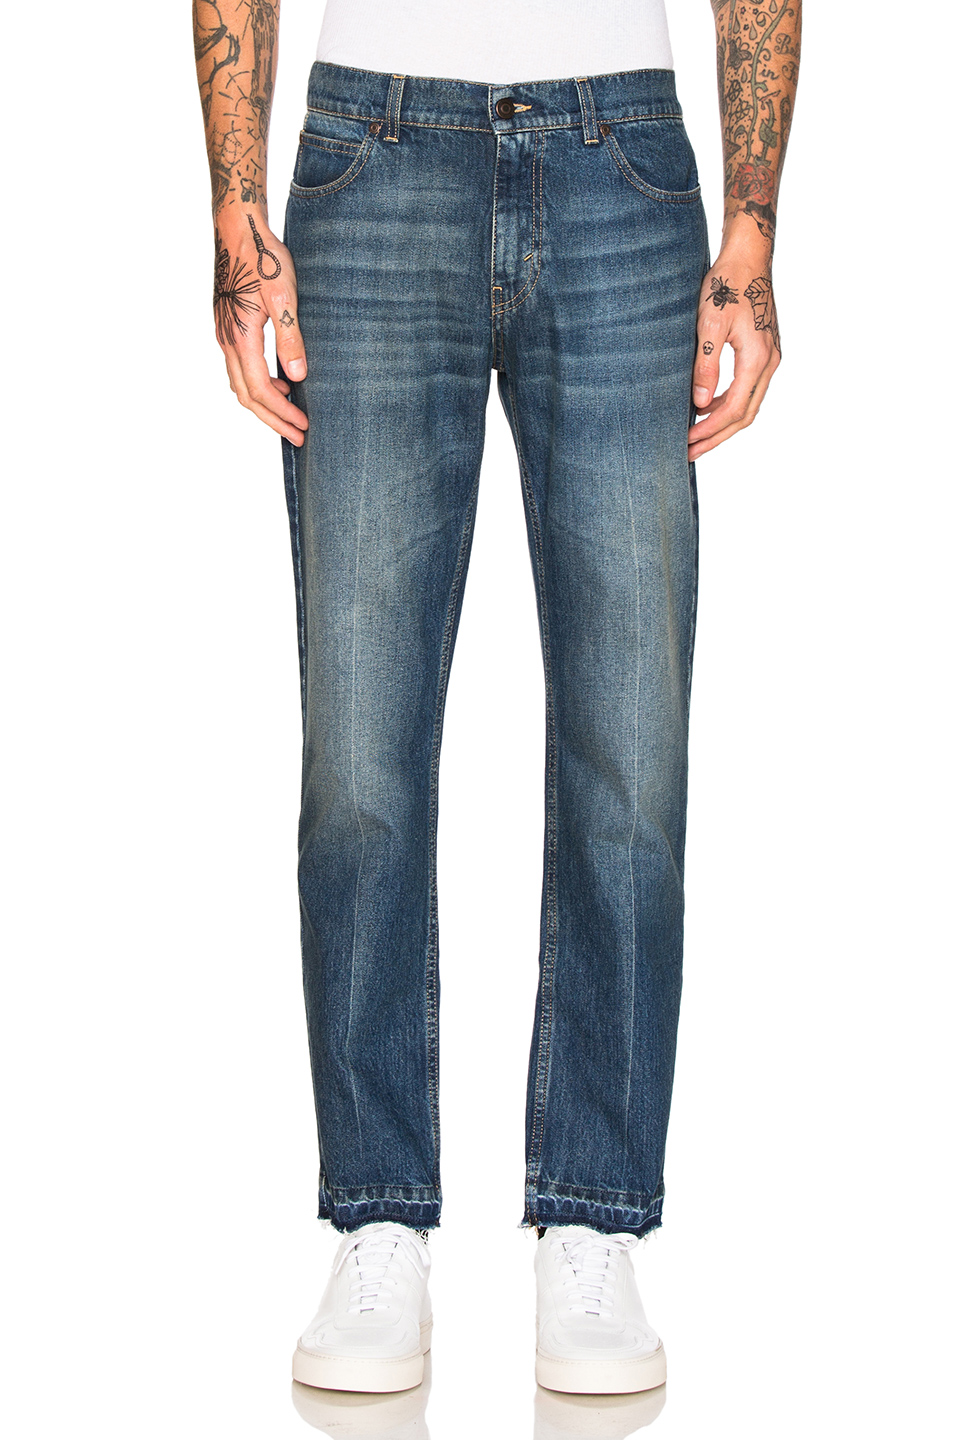 Photo of Stella McCartneyDenim Trousers in Blue - shop Stella McCartney menswear